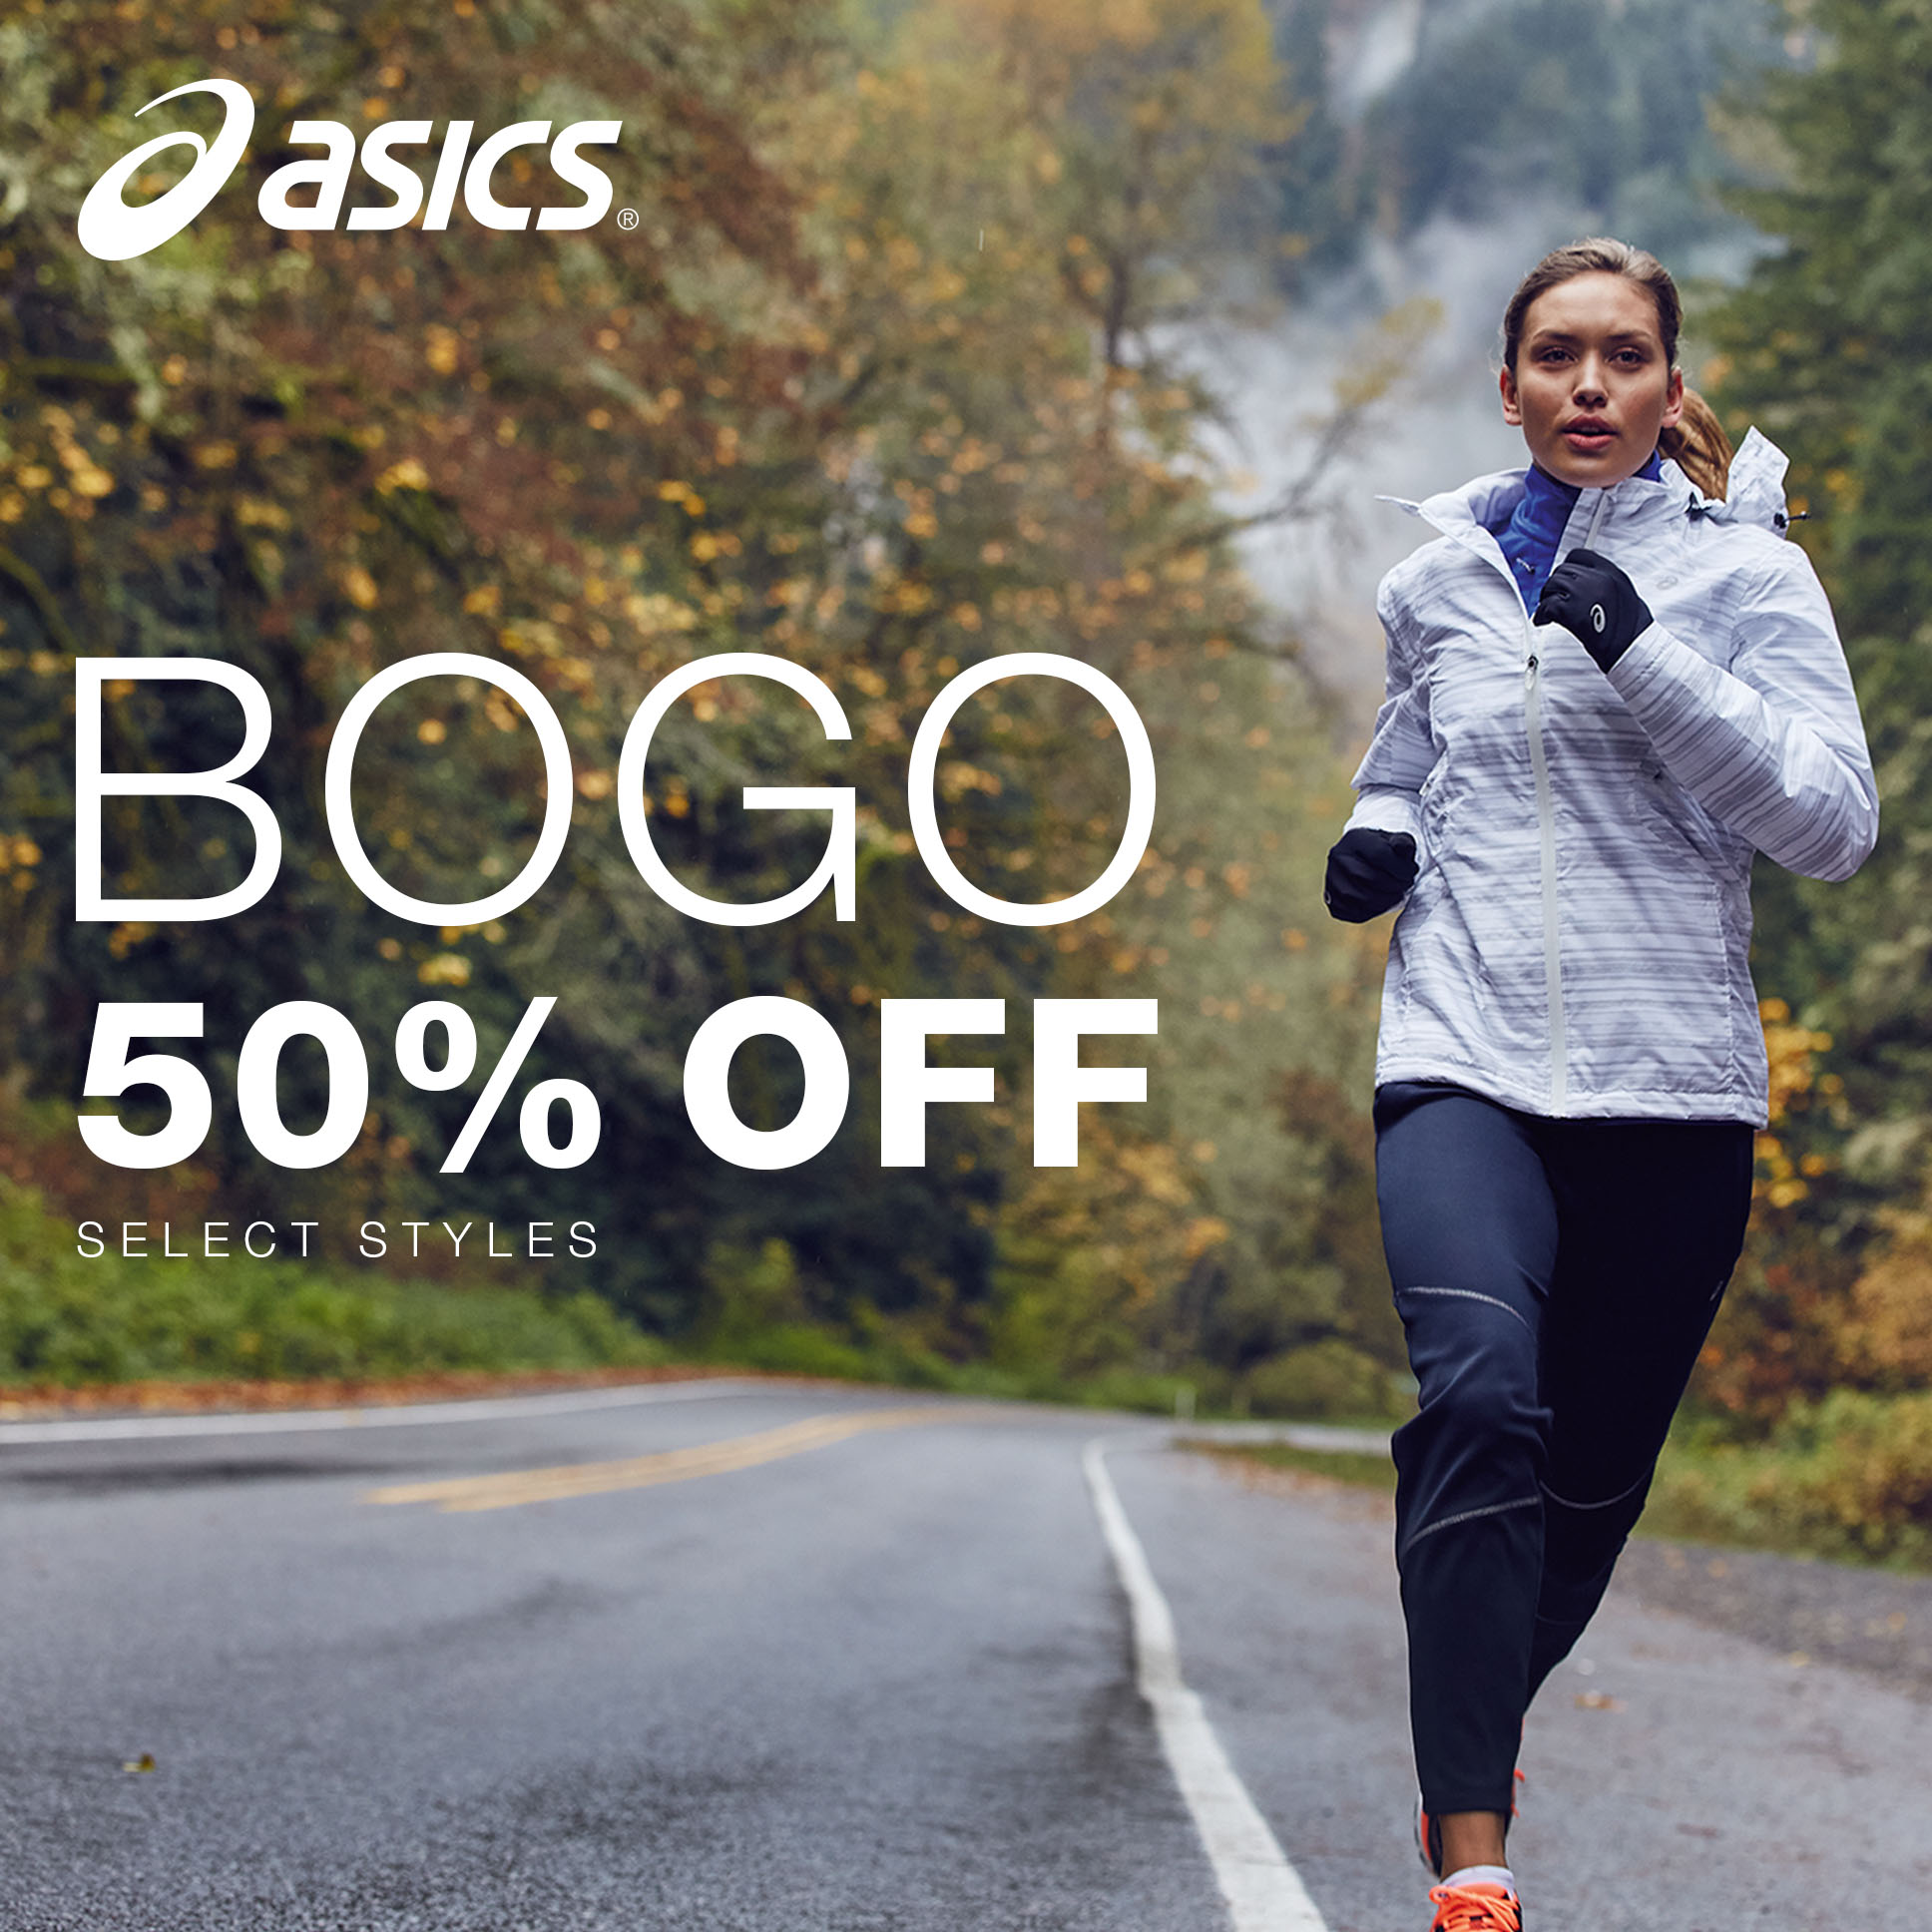 BOGO 50% Off Select Footwear and Apparel